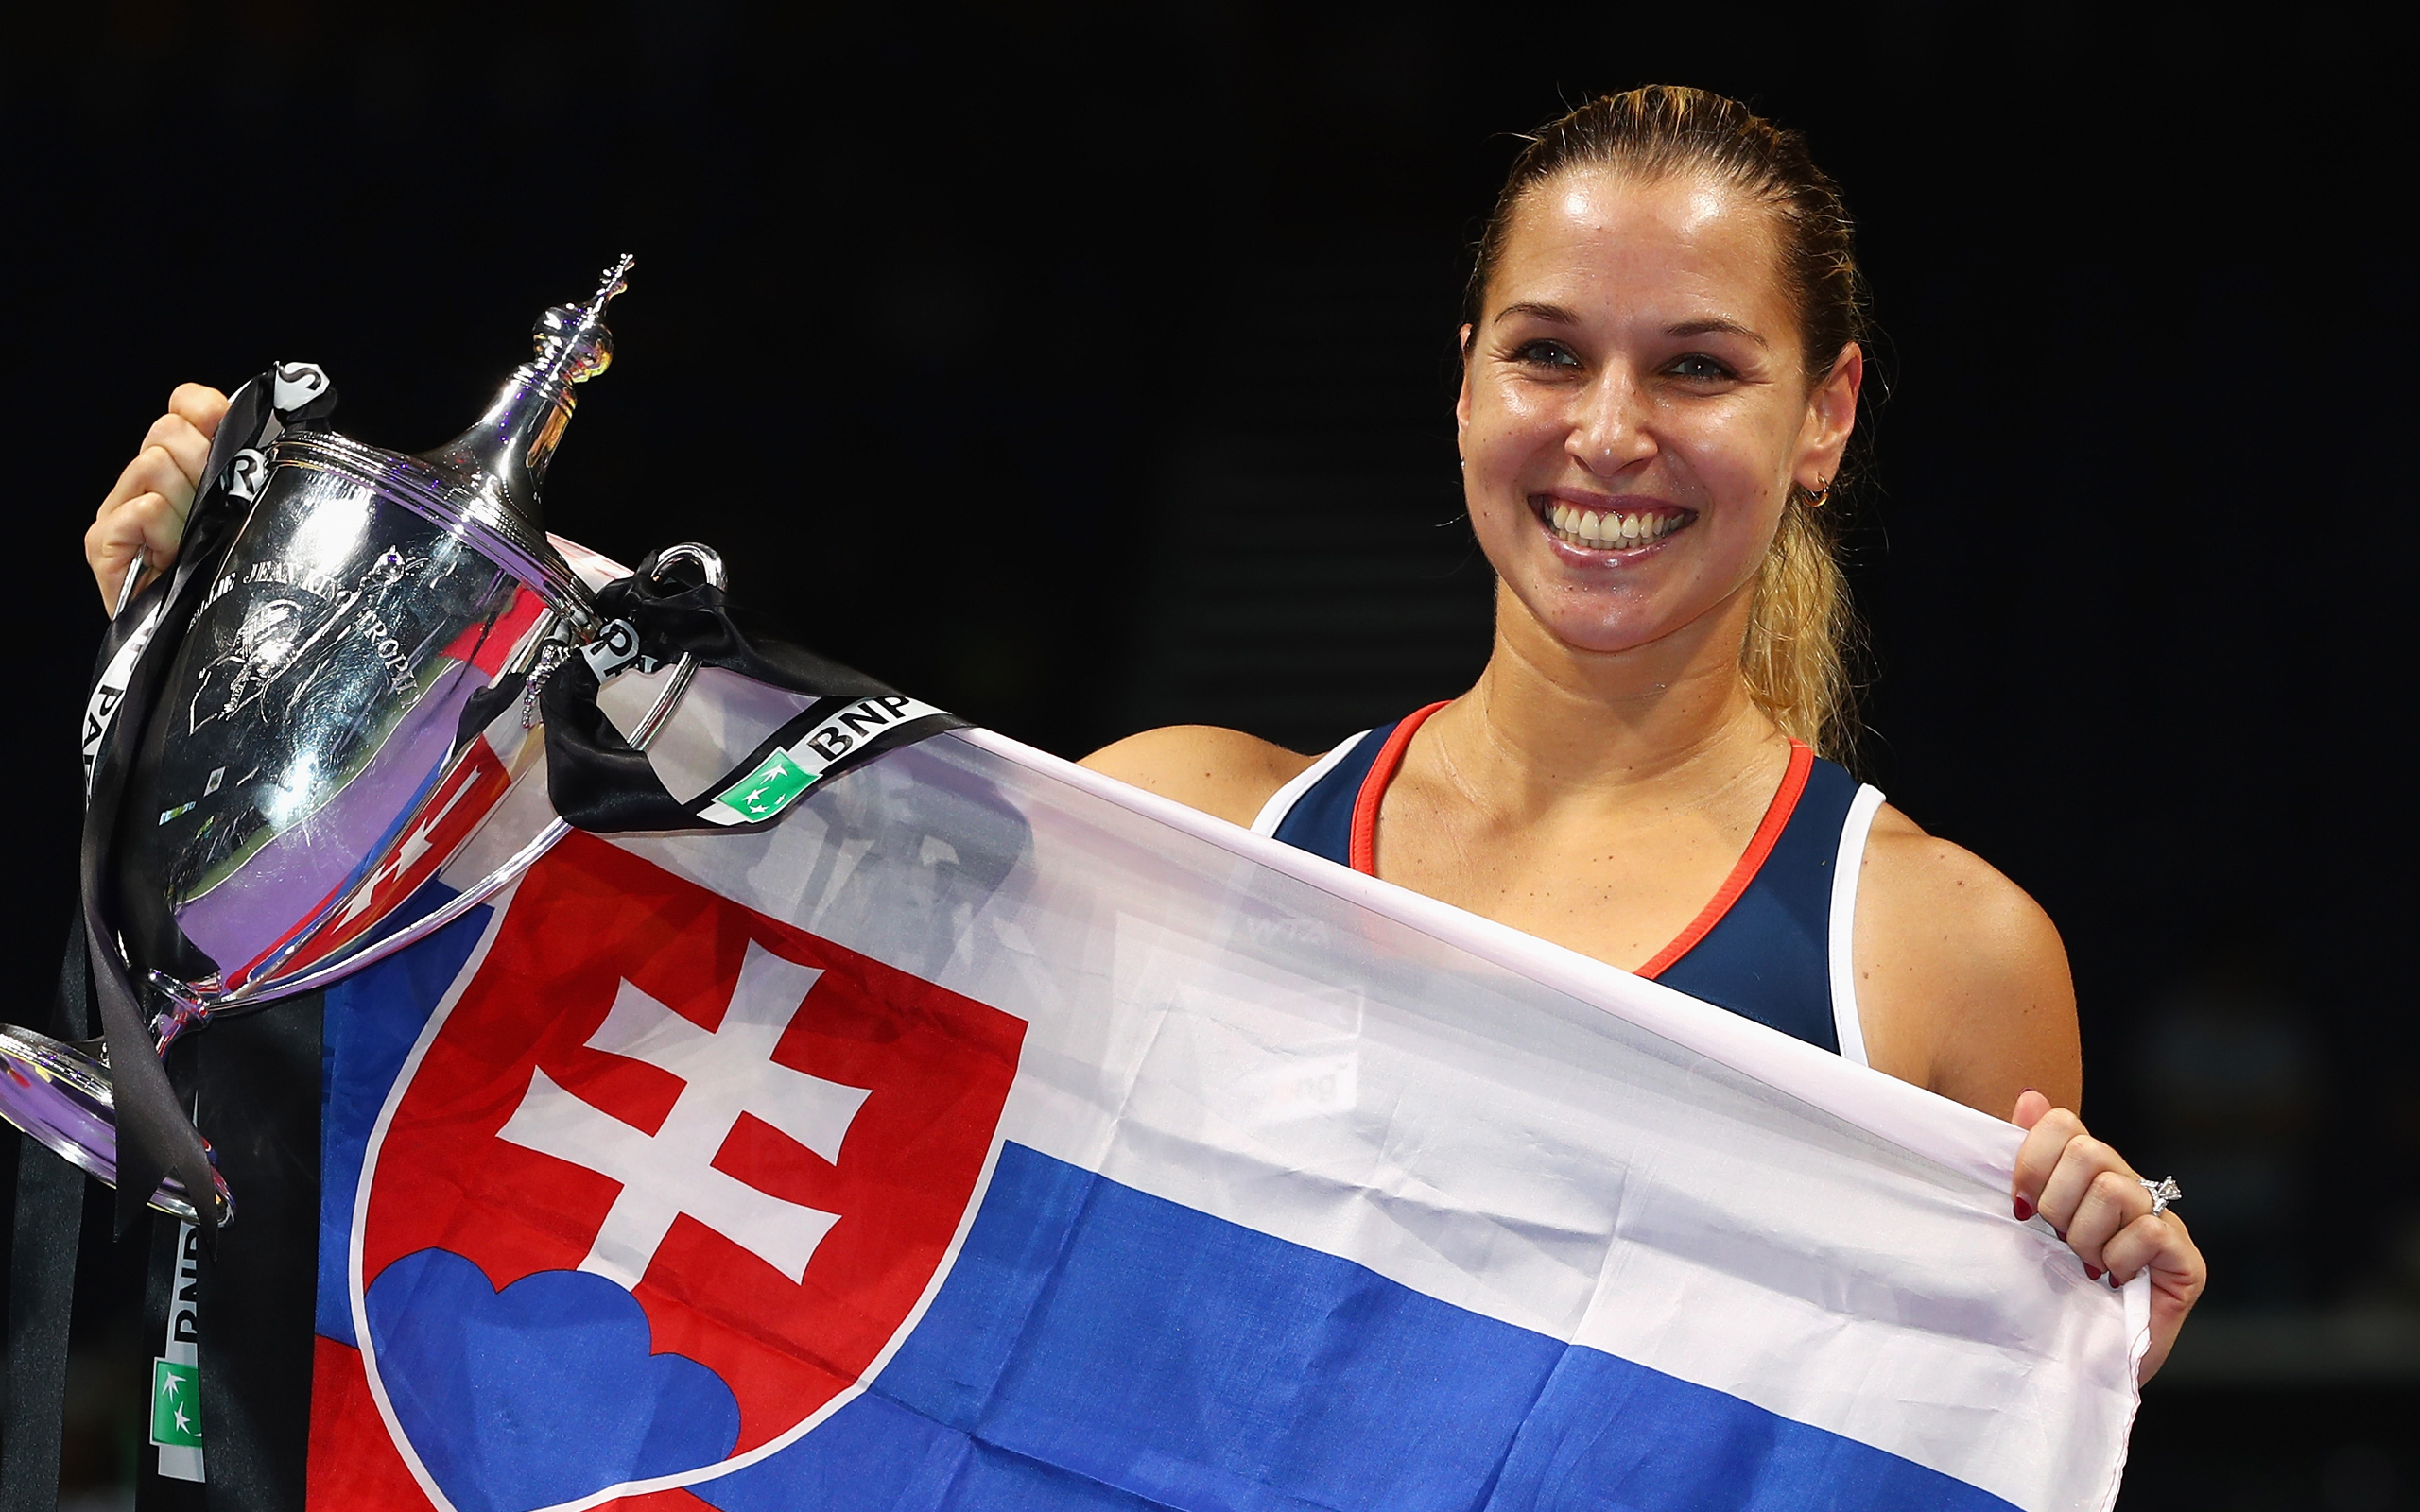 Download Wallpapers Dominika Cibulkova Tennis Wta Slovakian